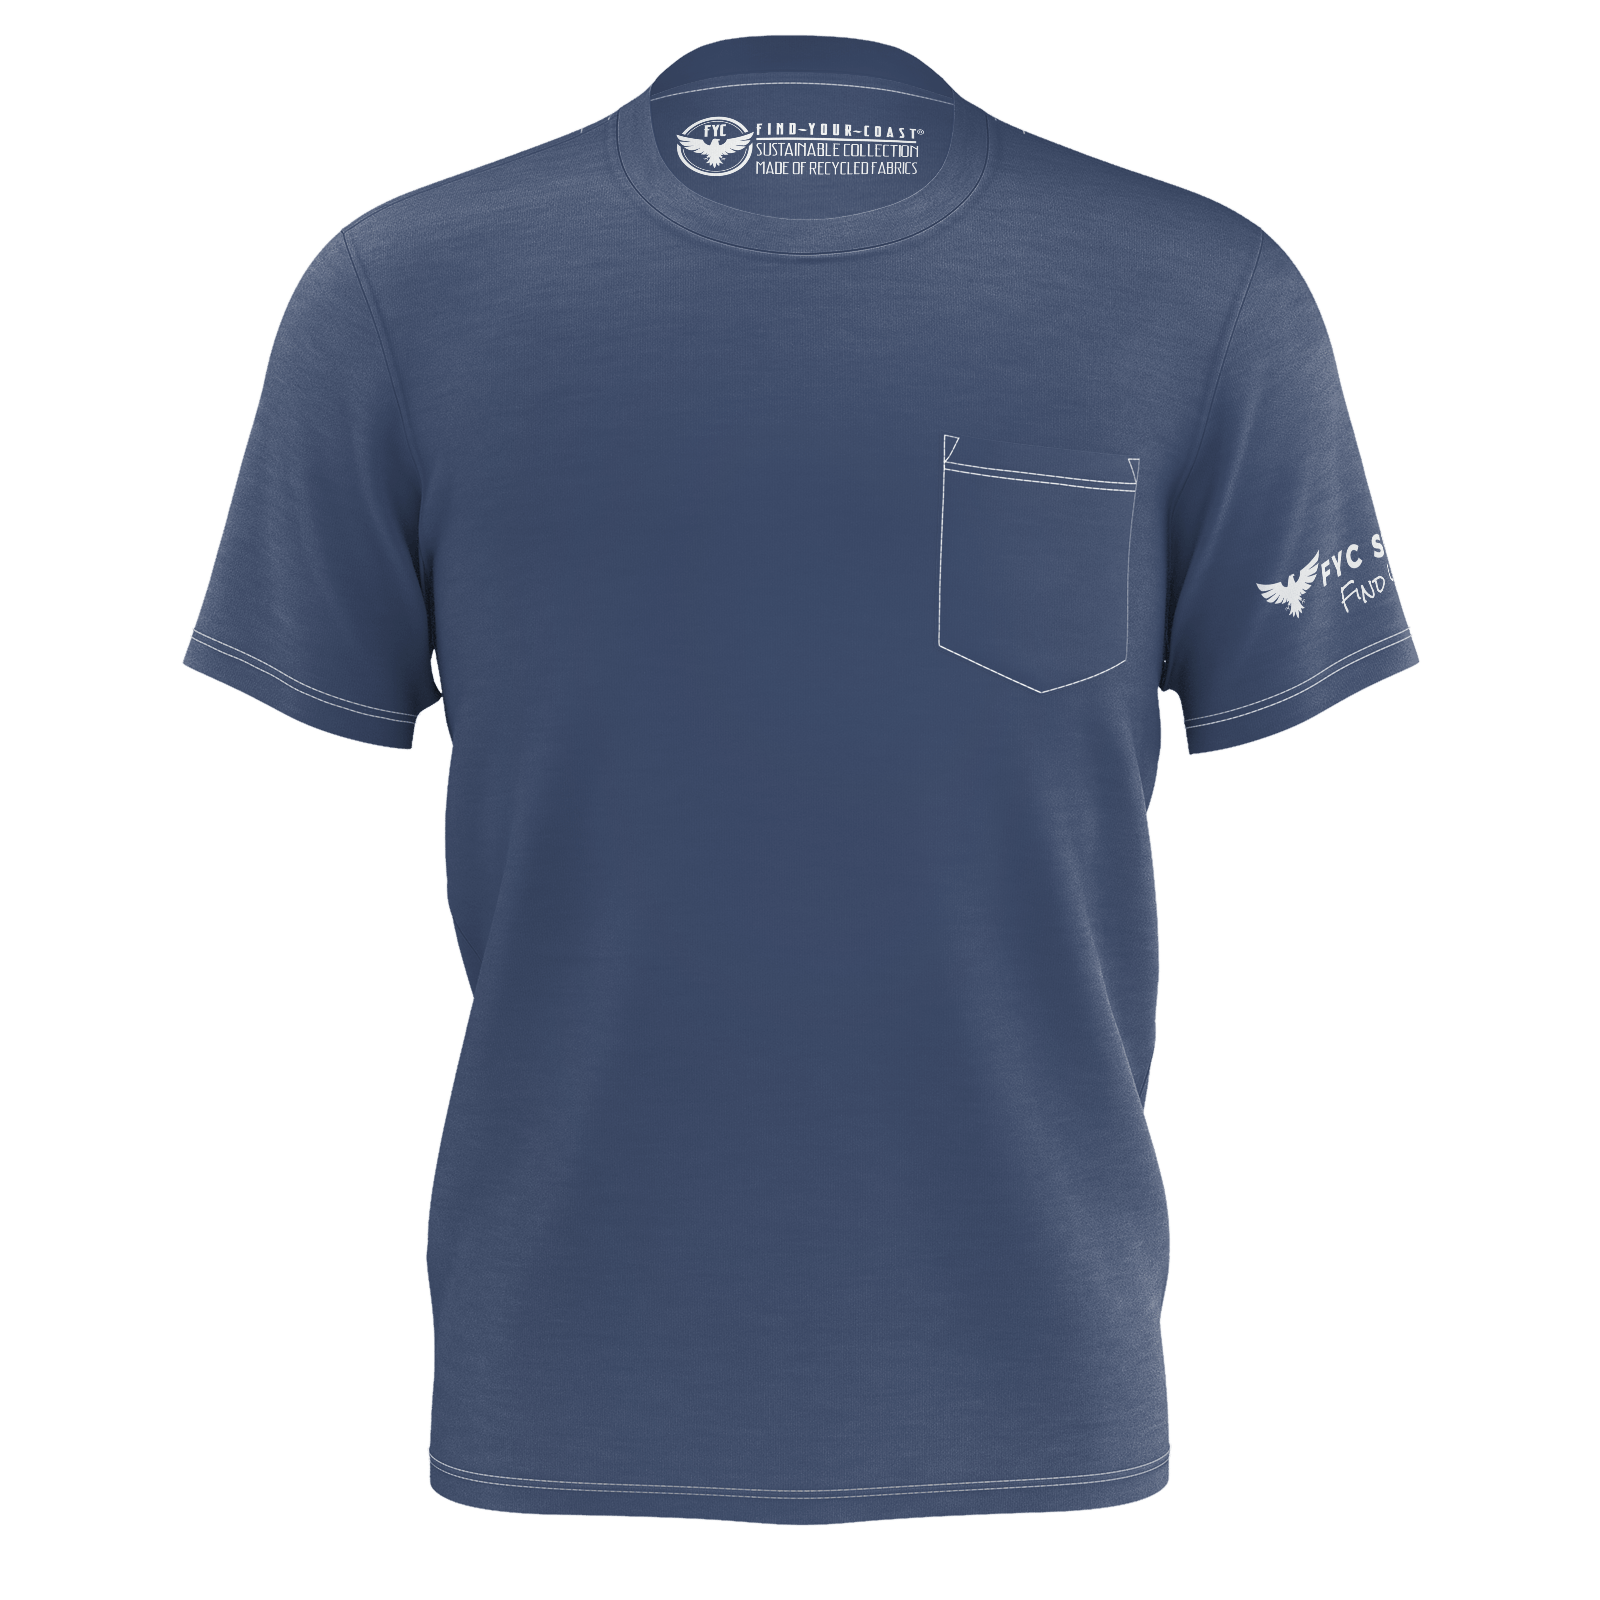 Men's Deep Blue Sustainable Charter Pocket Tee Shirt